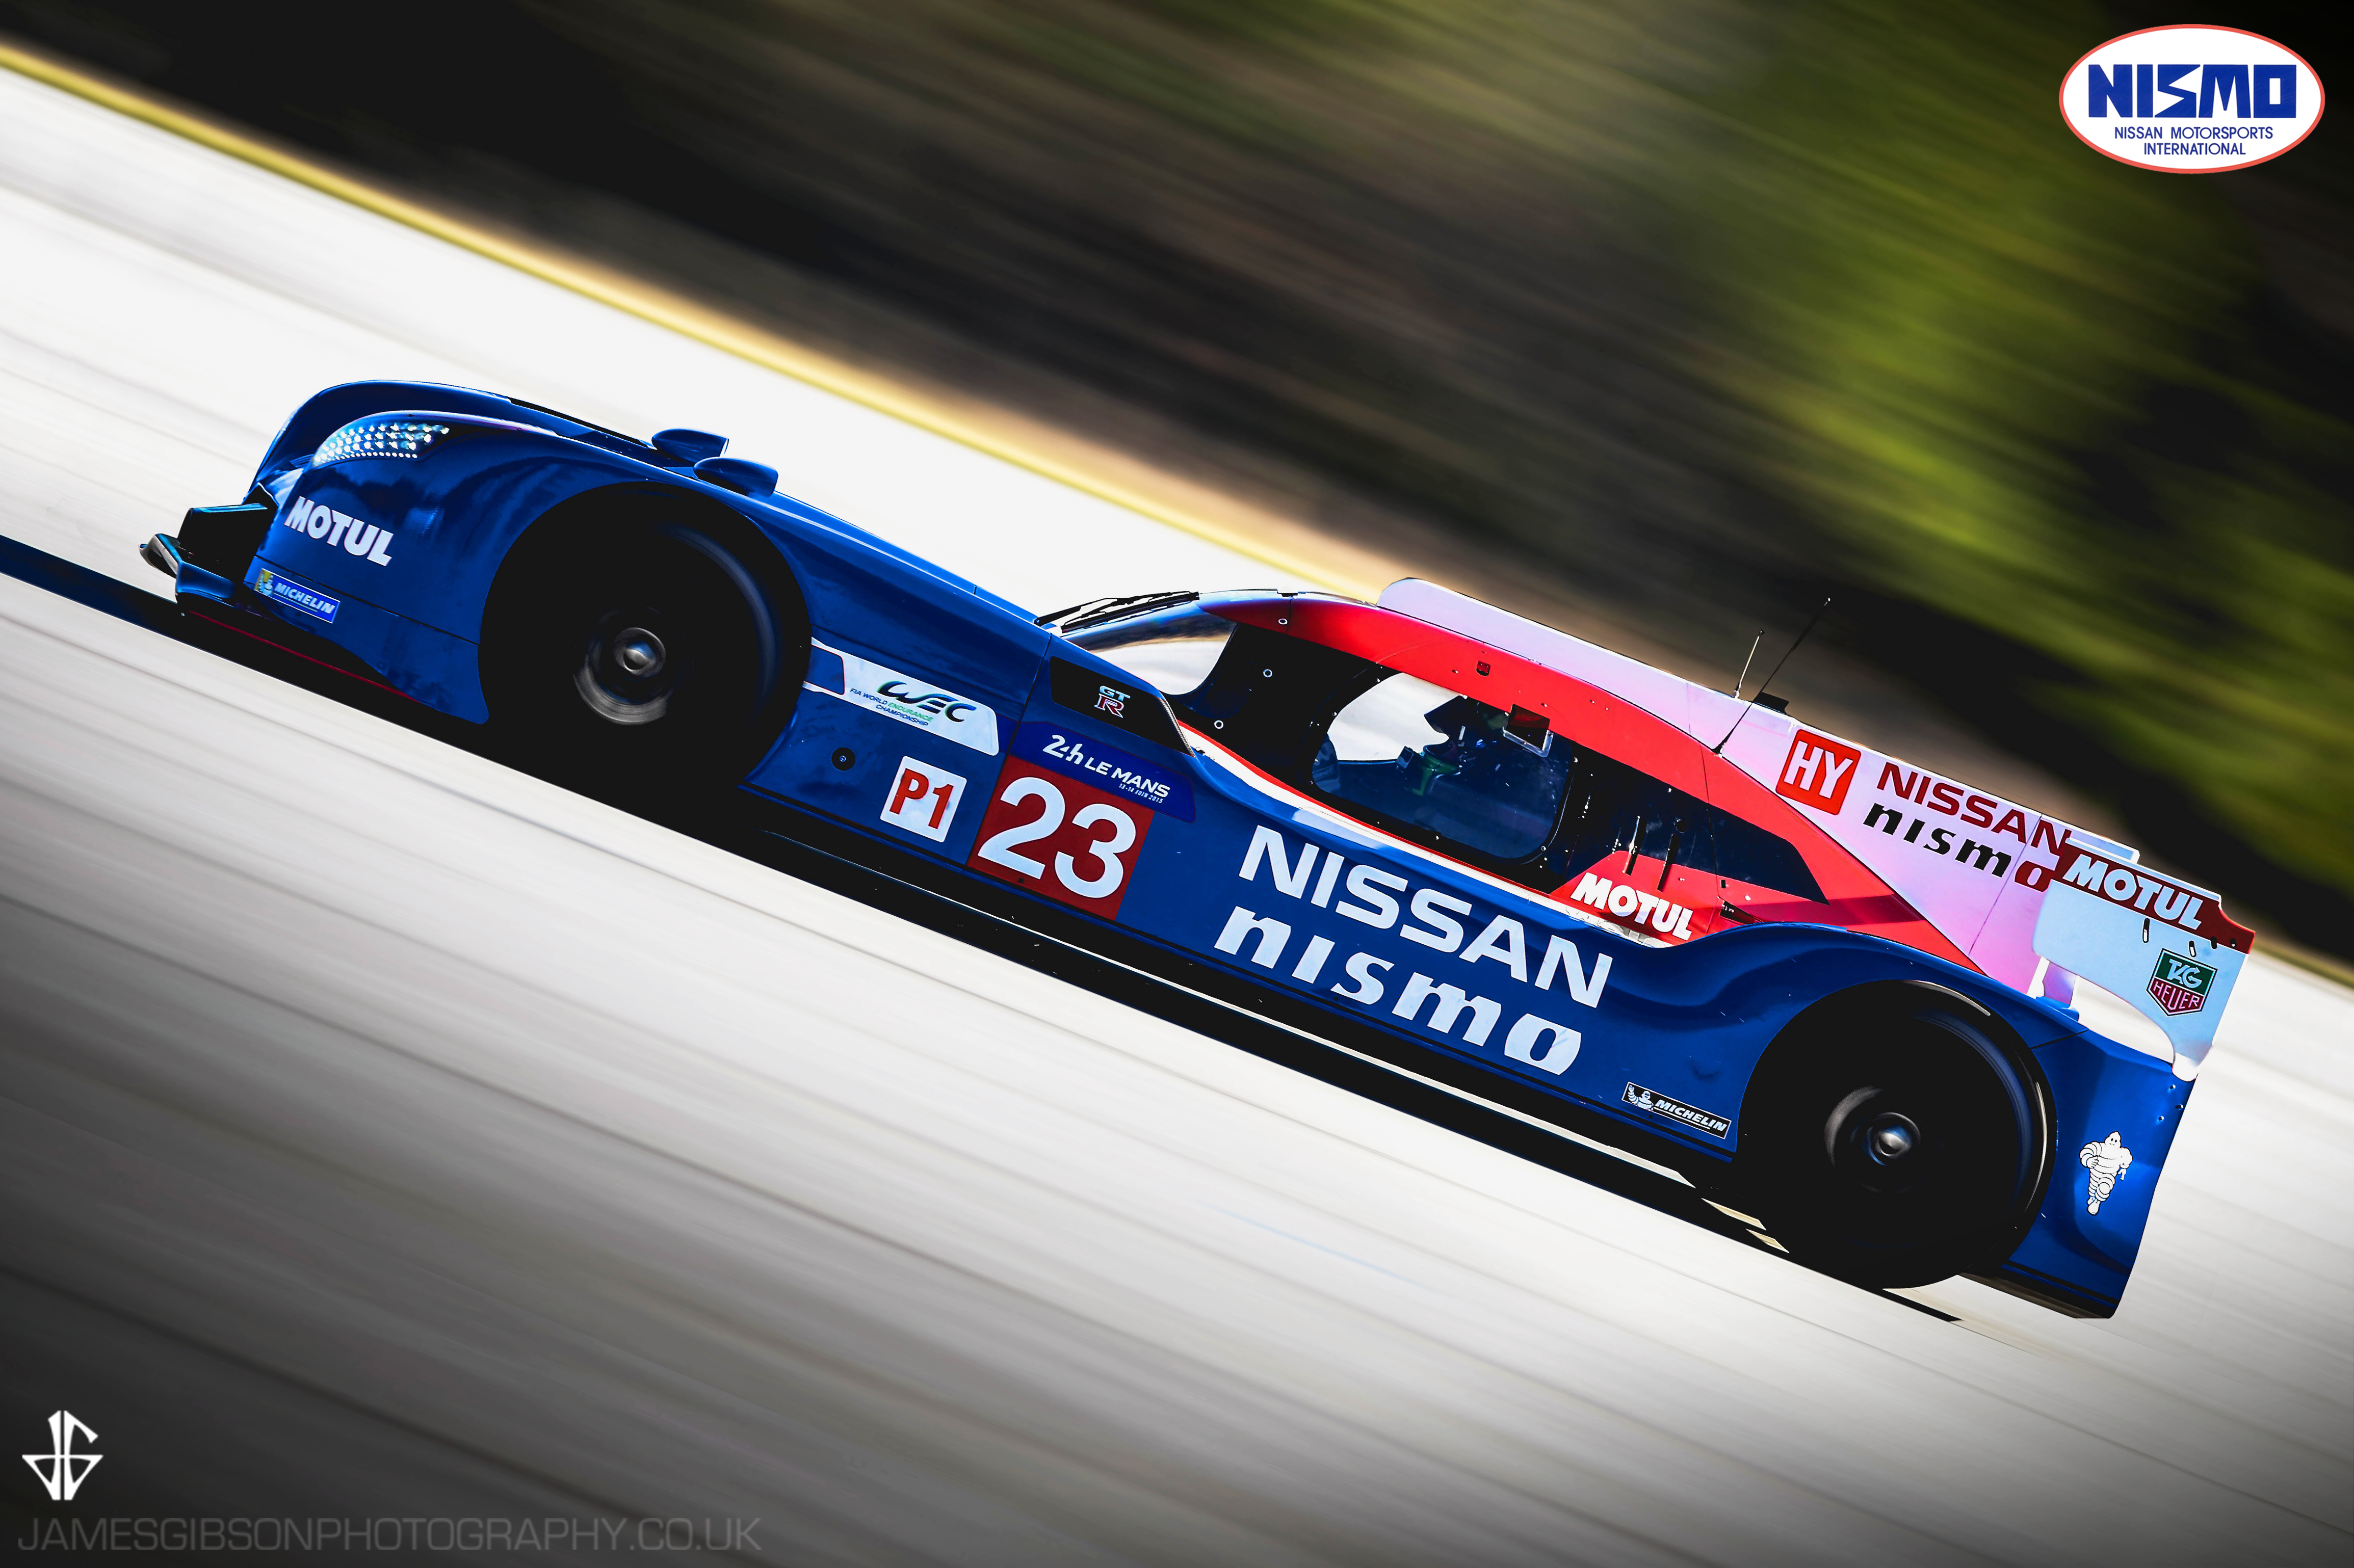 nismo2 i]-1 james gibson photography